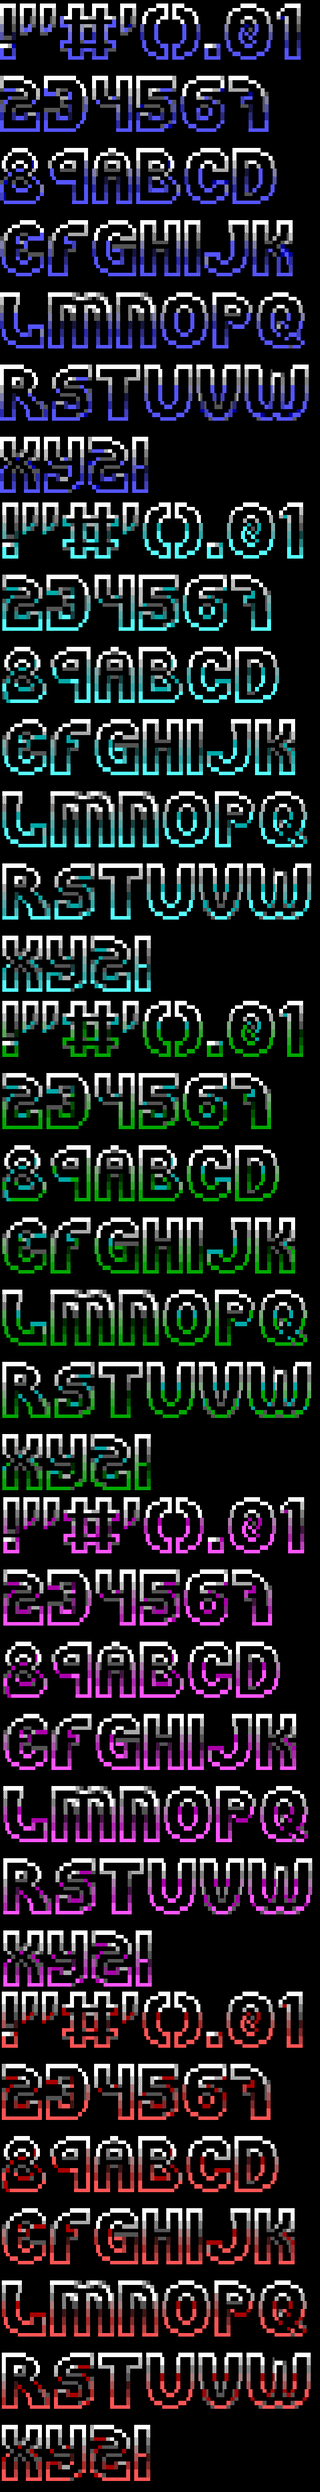 Ansi Font for TheDraw 'Font 26 Outlined' by roy-sac